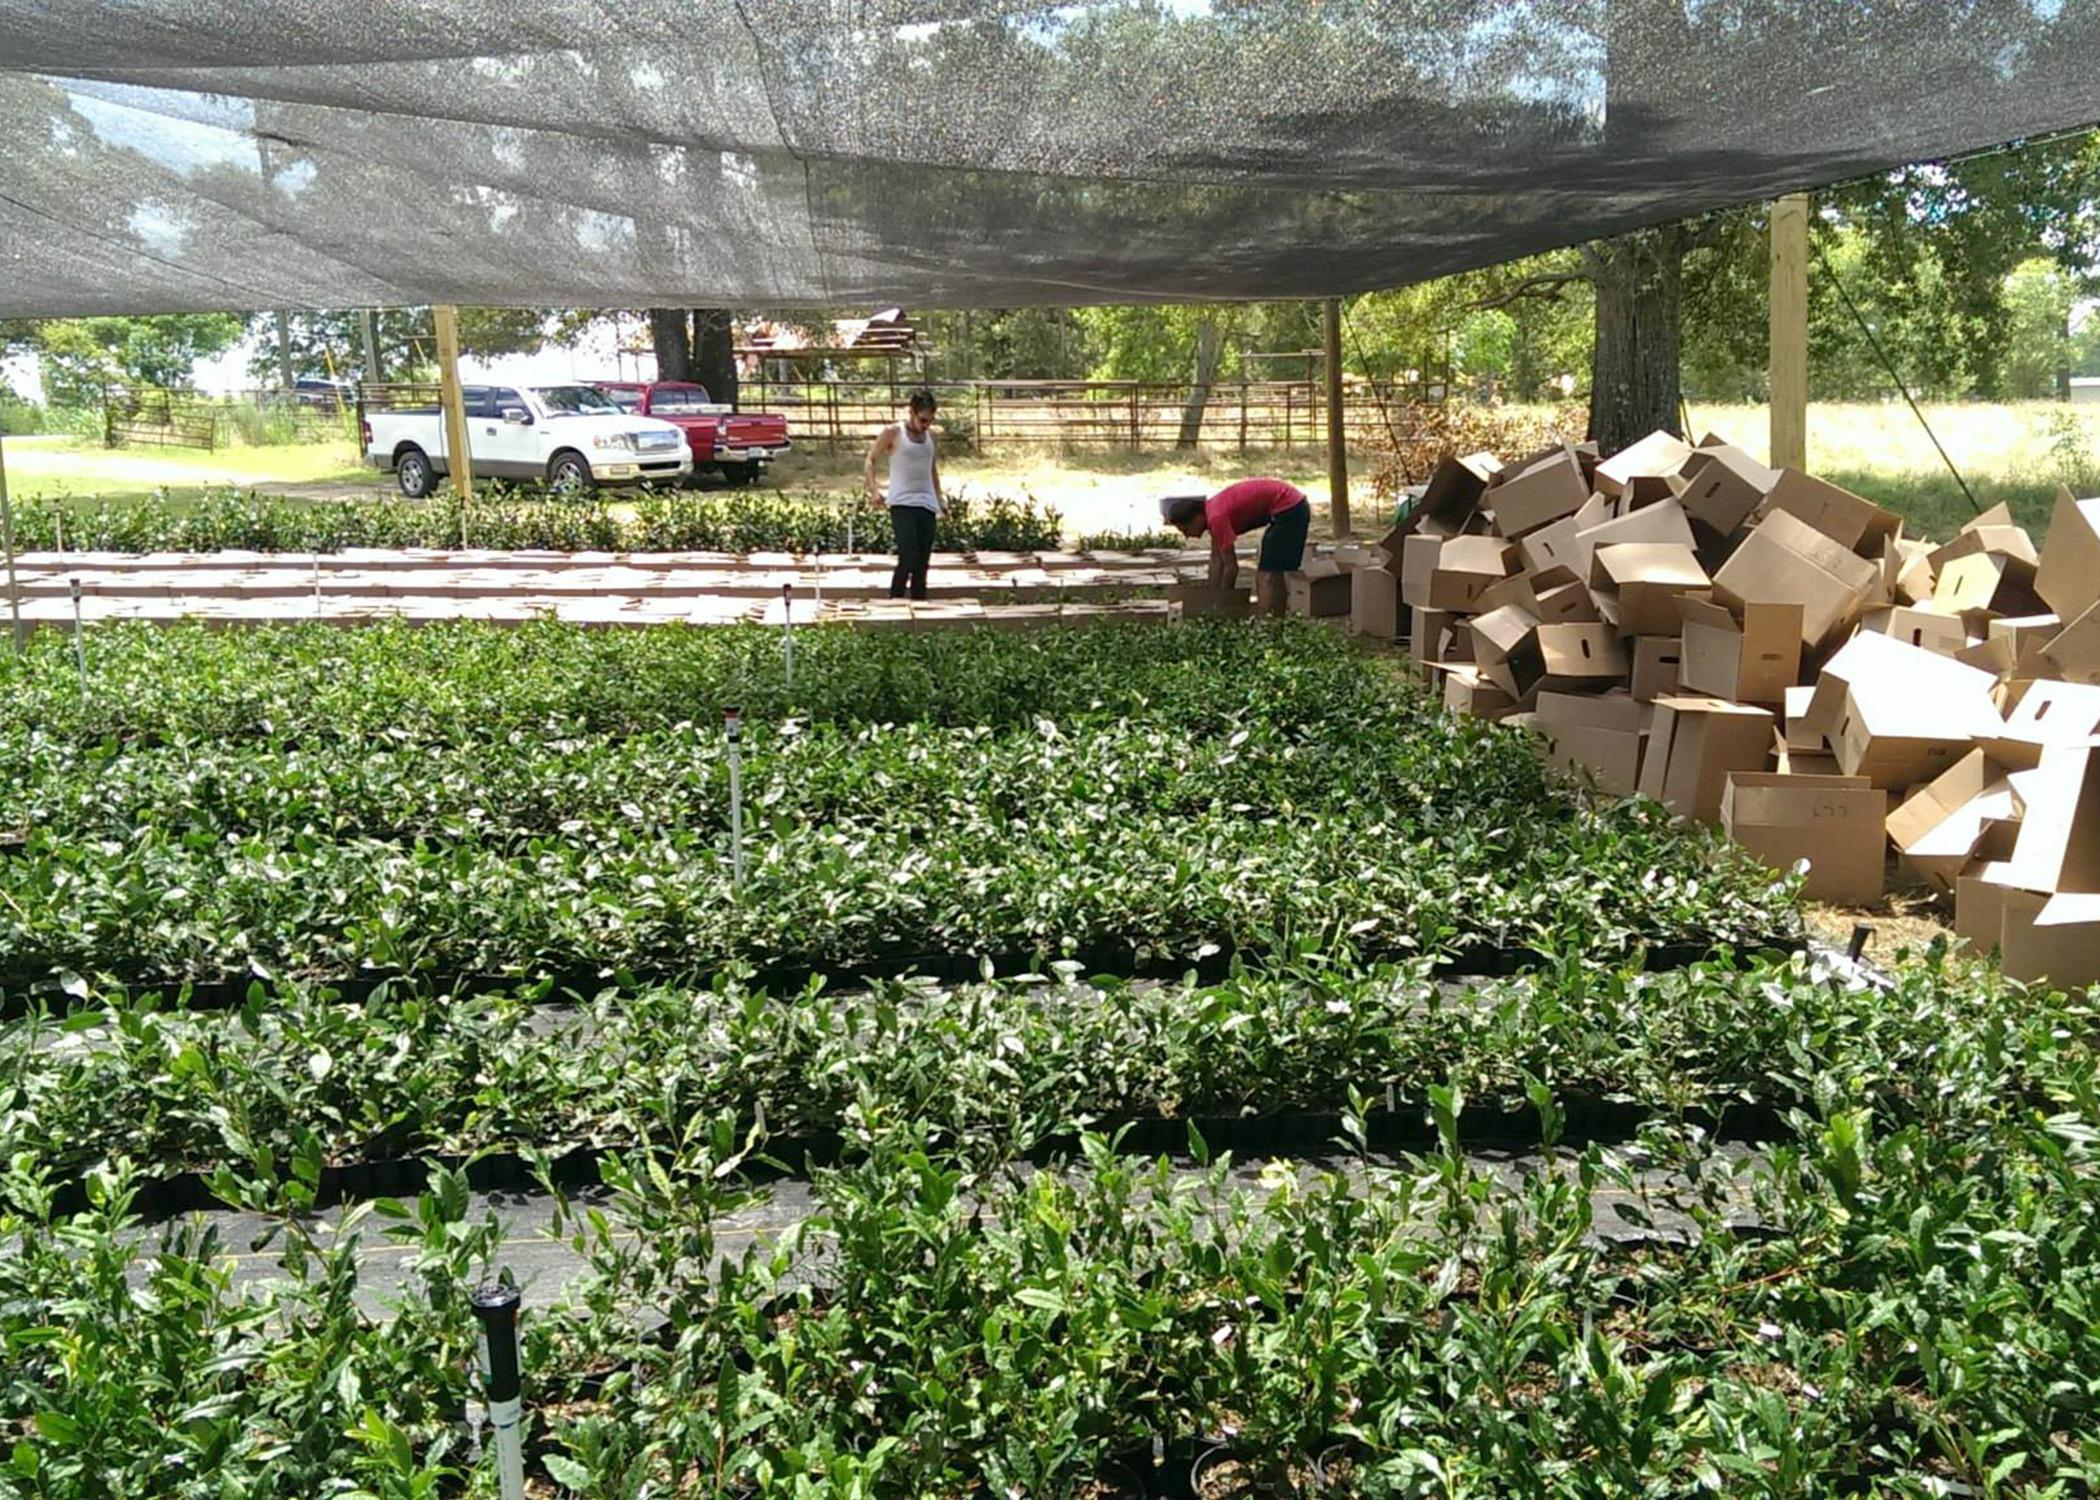 Timothy Gipson, right, and a volunteer unbox some of the 30,000 tea plants delivered to the The Great Mississippi Tea Company on June 17, 2014, in Brookhaven, Mississippi. The 260 seedlings planted in October thrived through the wet, cold winter and spring. (Photo by Jason McDonald)